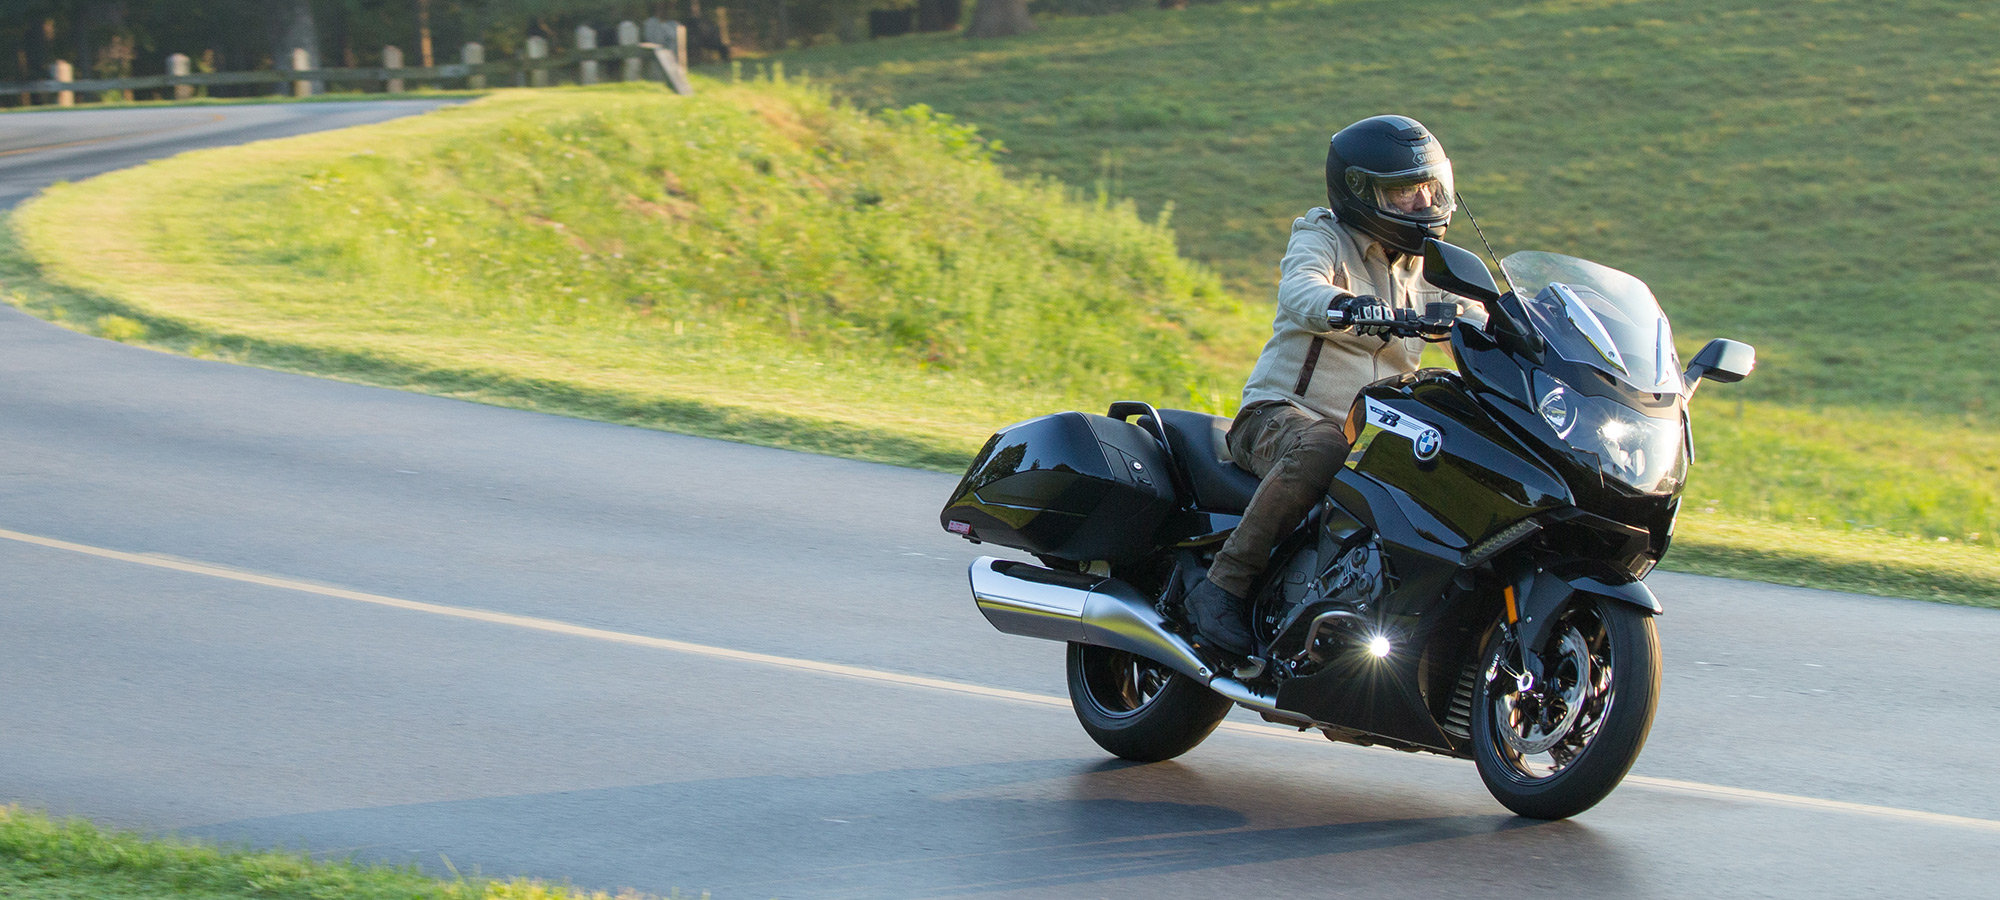 2018 BMW K1600B Review- Touring Bagger   Cycle World